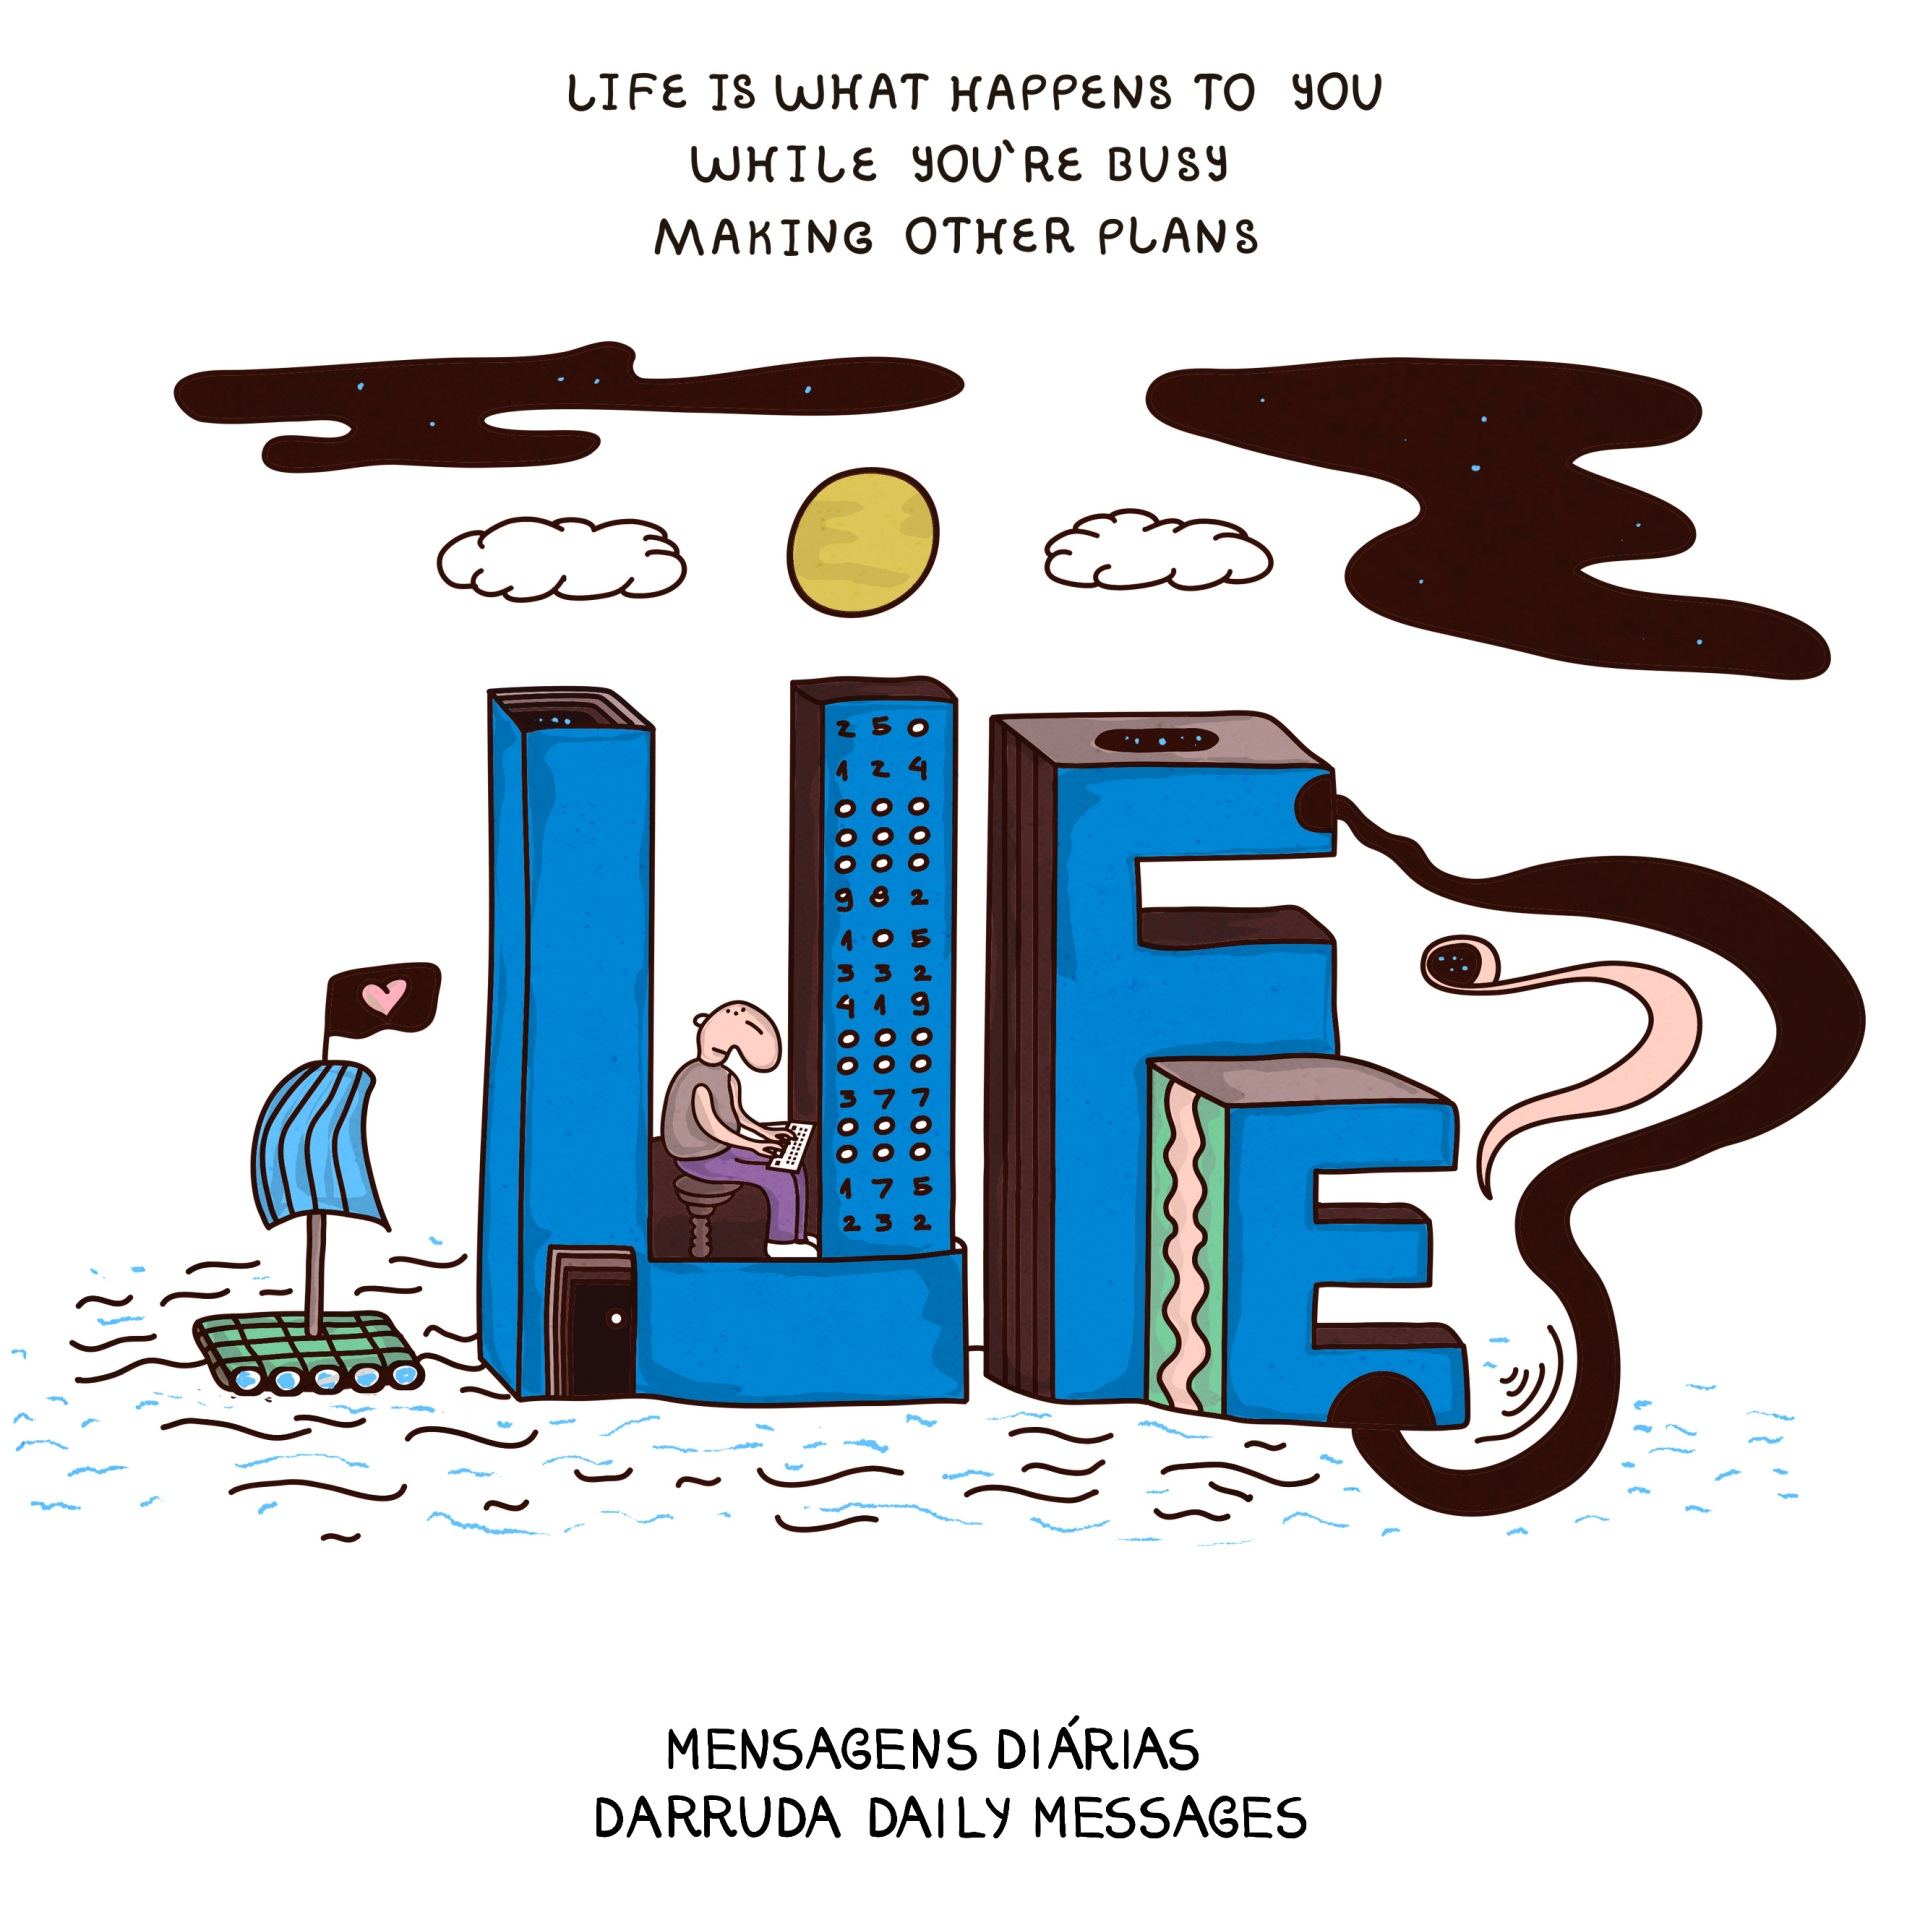 life_daily